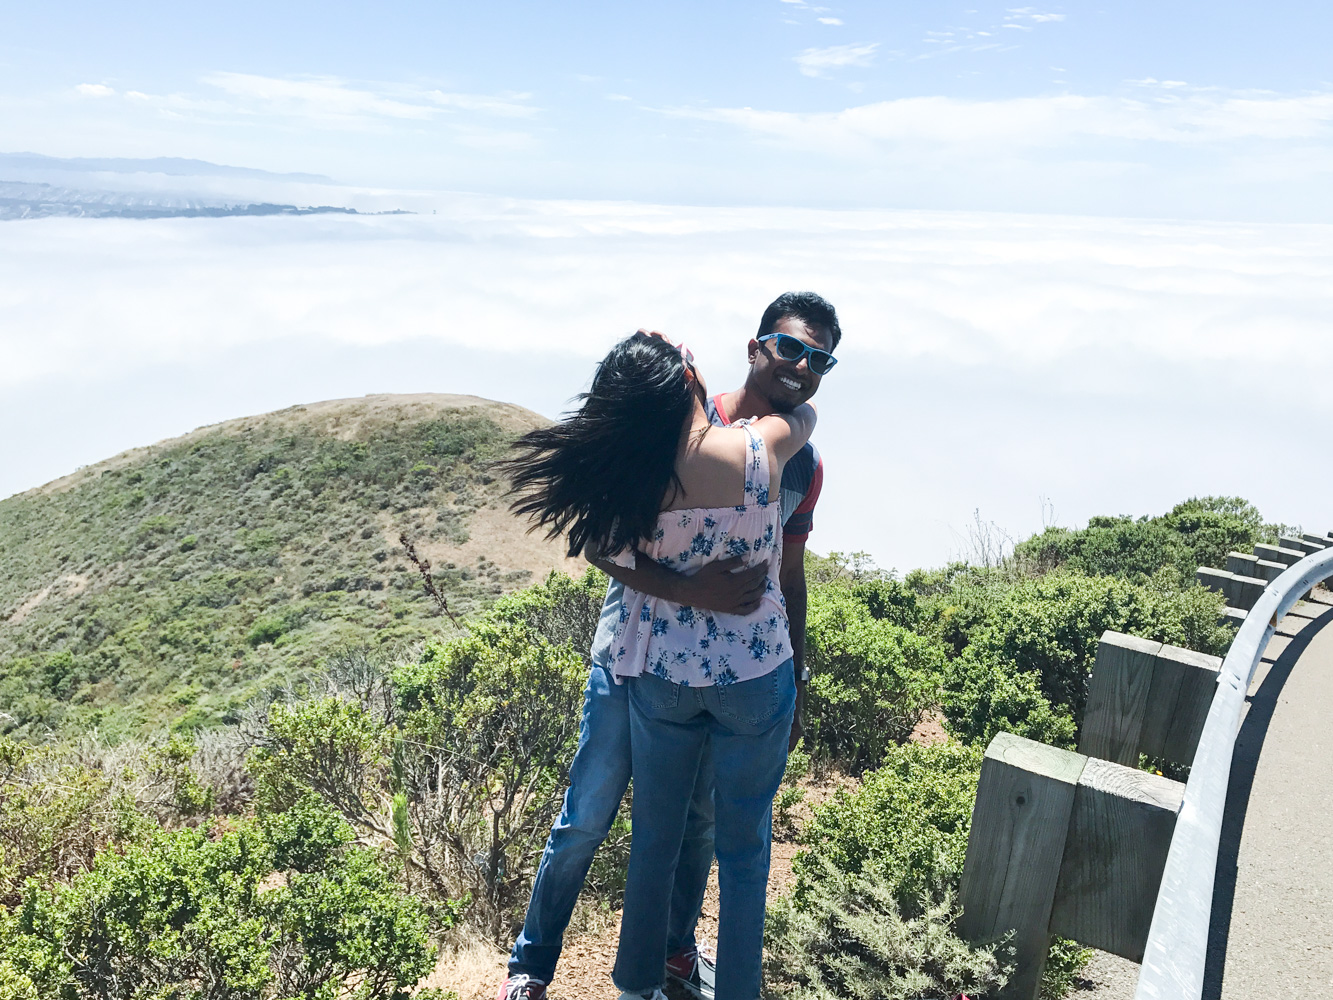 marin-county-summer-day-activities-floral-blouse-california-travel-couple 6